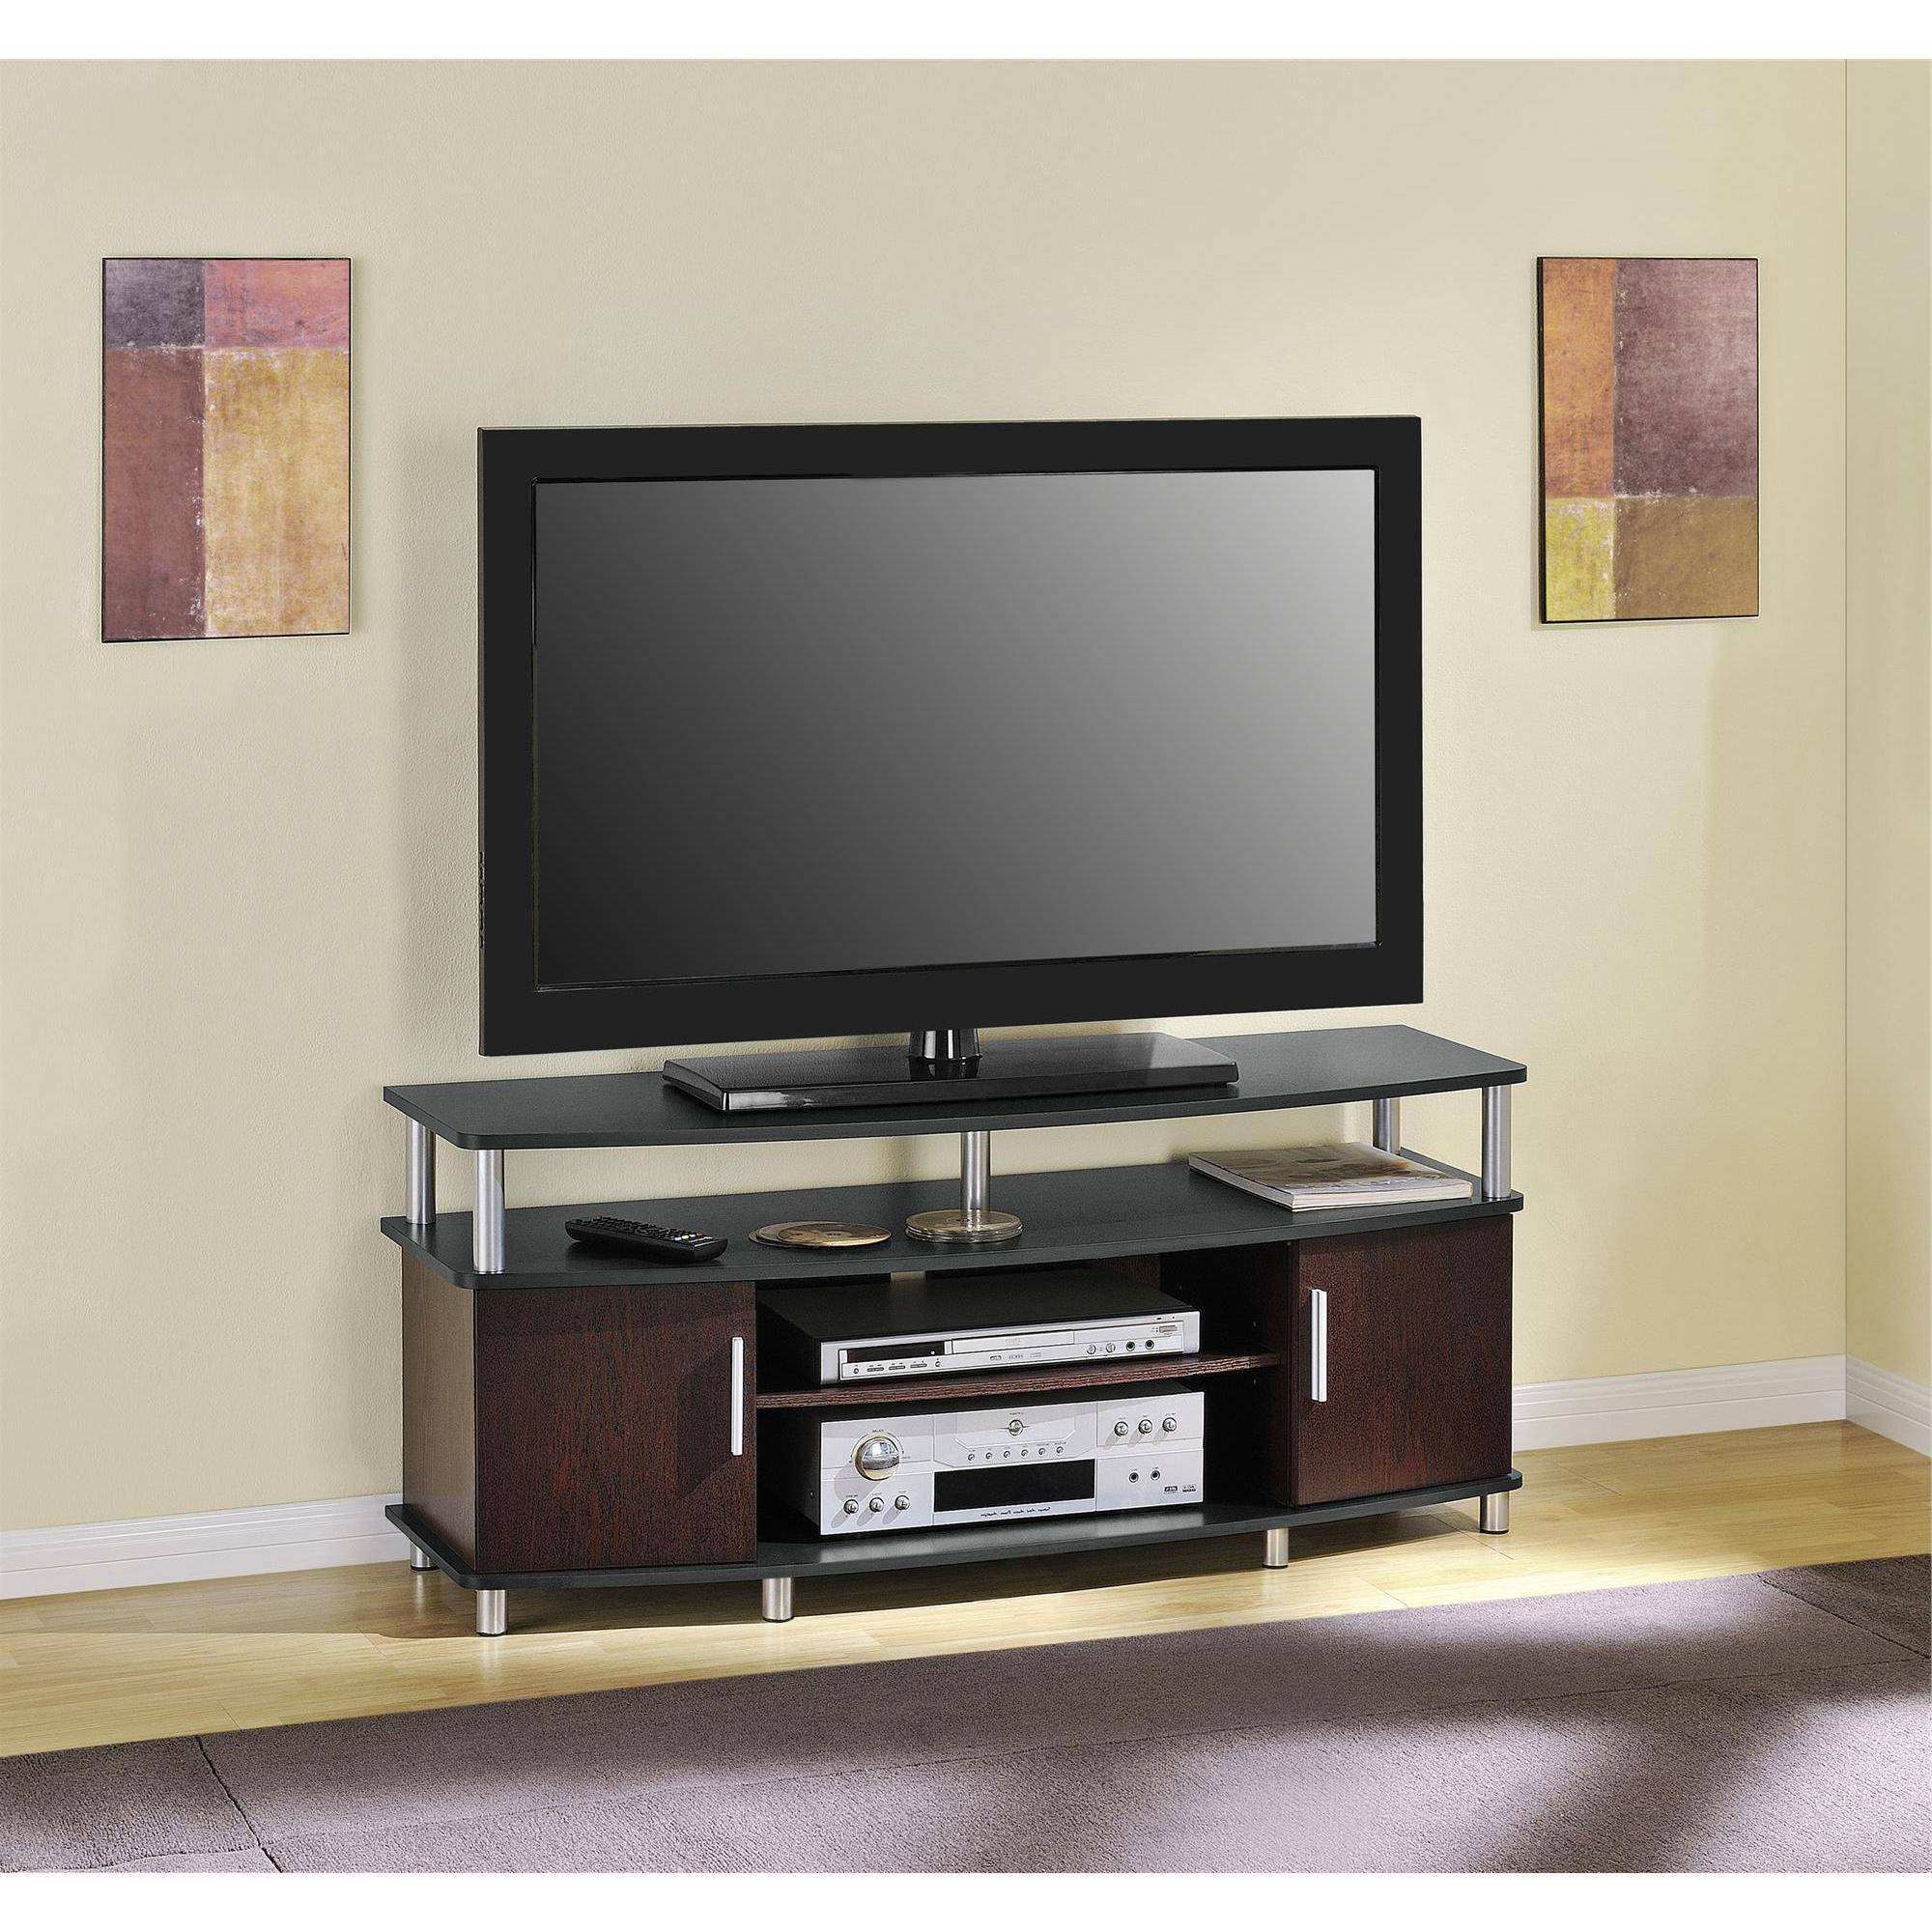 """Well Liked Unique Tv Stands For Flat Screens Inside Carson Tv Stand, For Tvs Up To 50"""", Multiple Finishes (View 19 of 20)"""